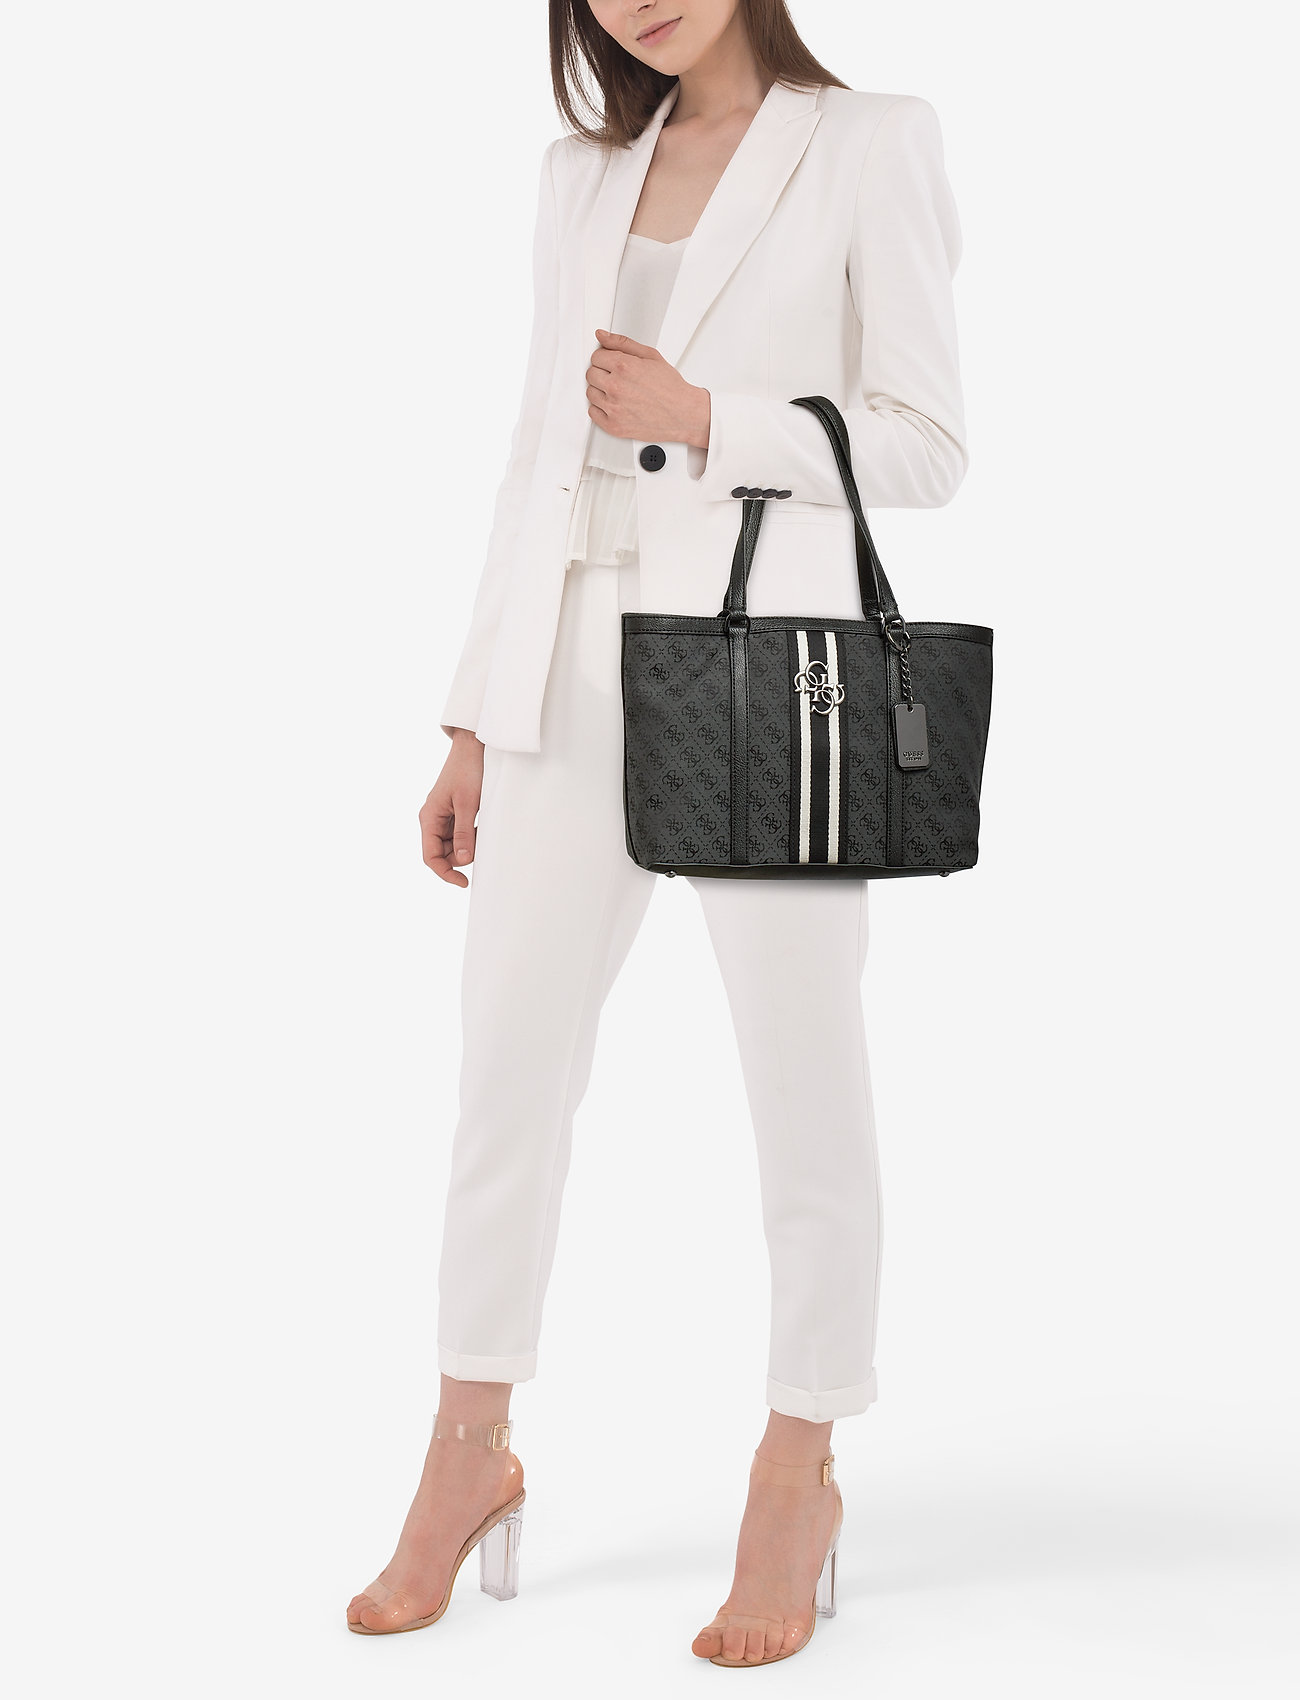 GUESS GUESS VINTAGE TOTE - COAL